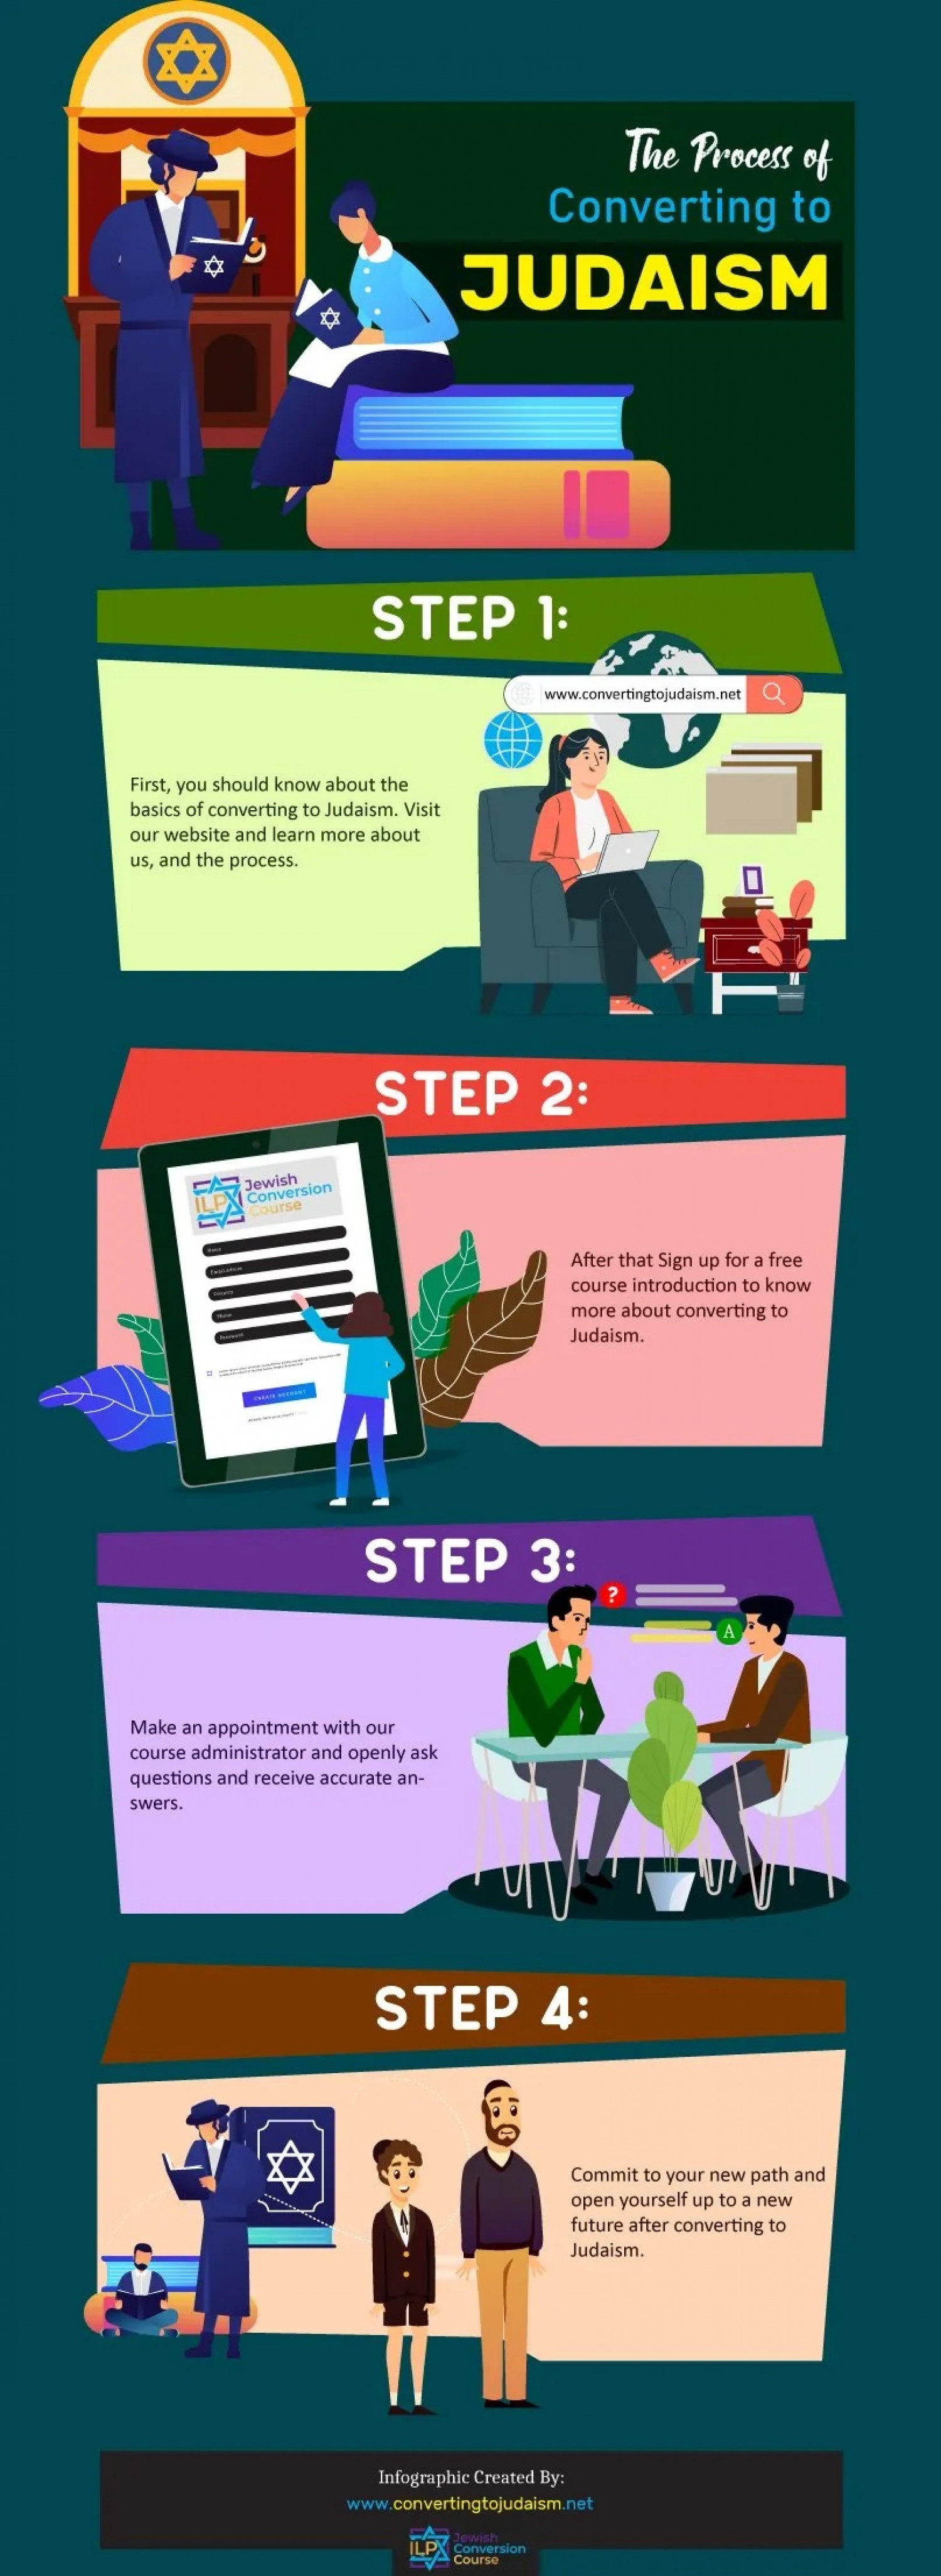 The Process of Converting to Judaism Infographic